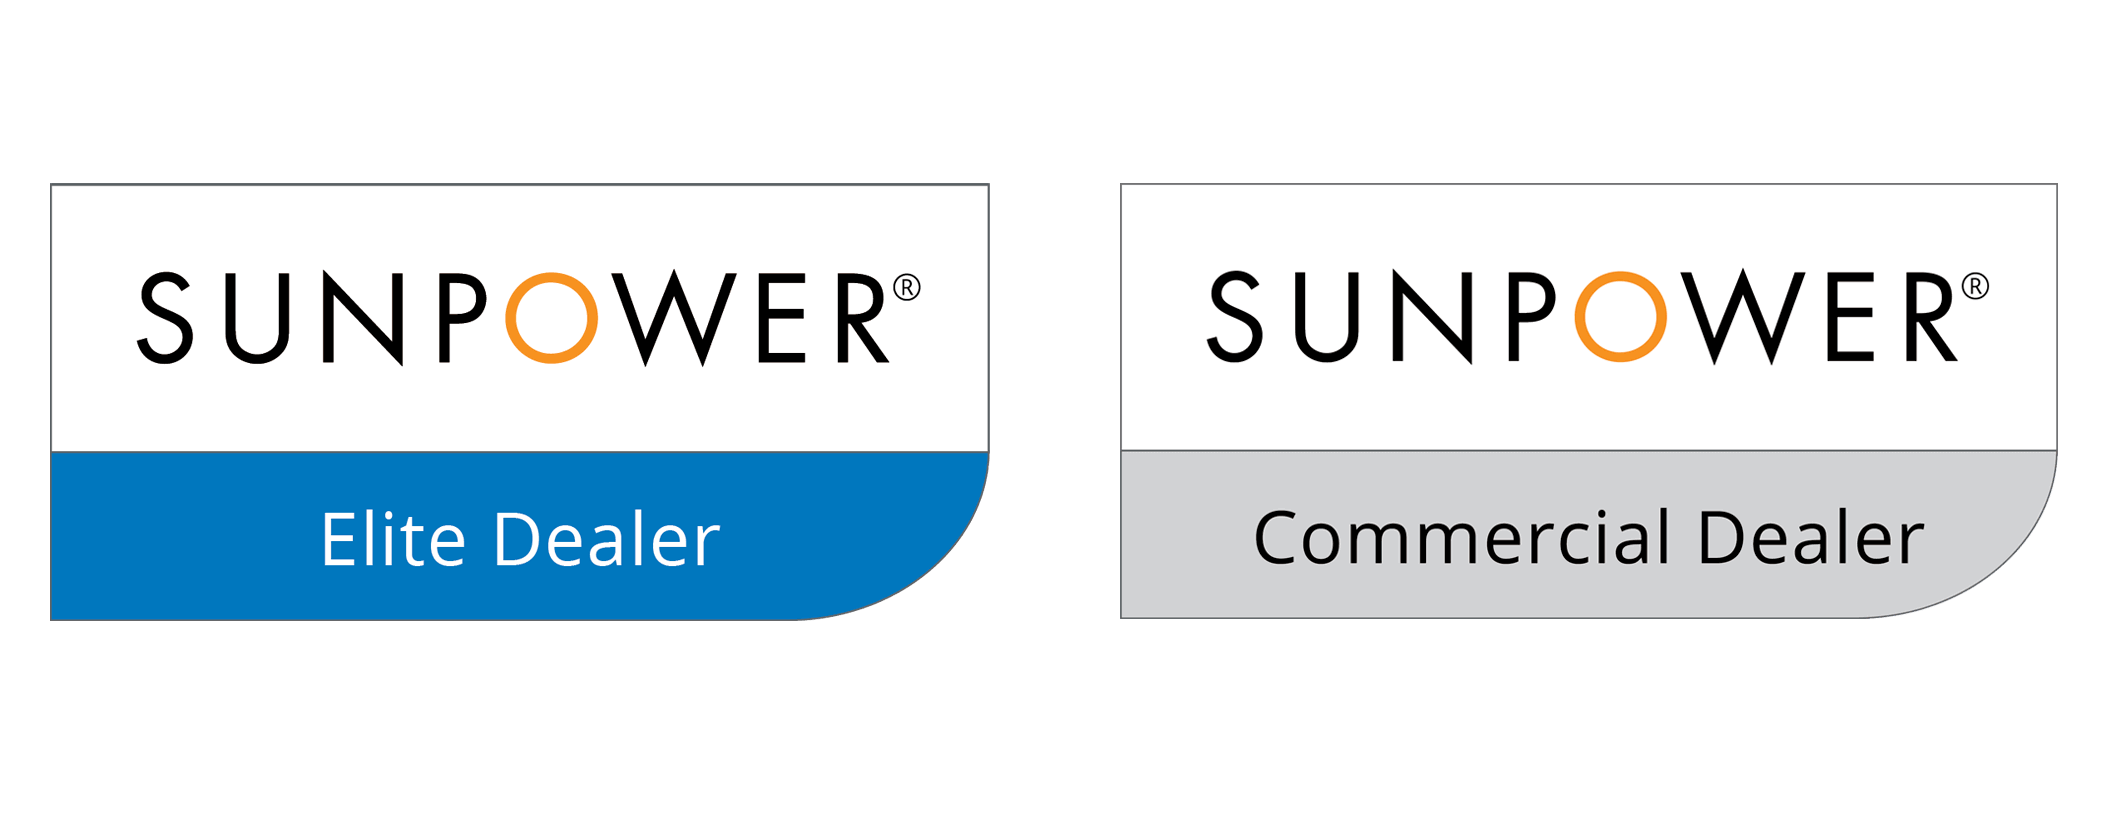 SunPower Solar Badges